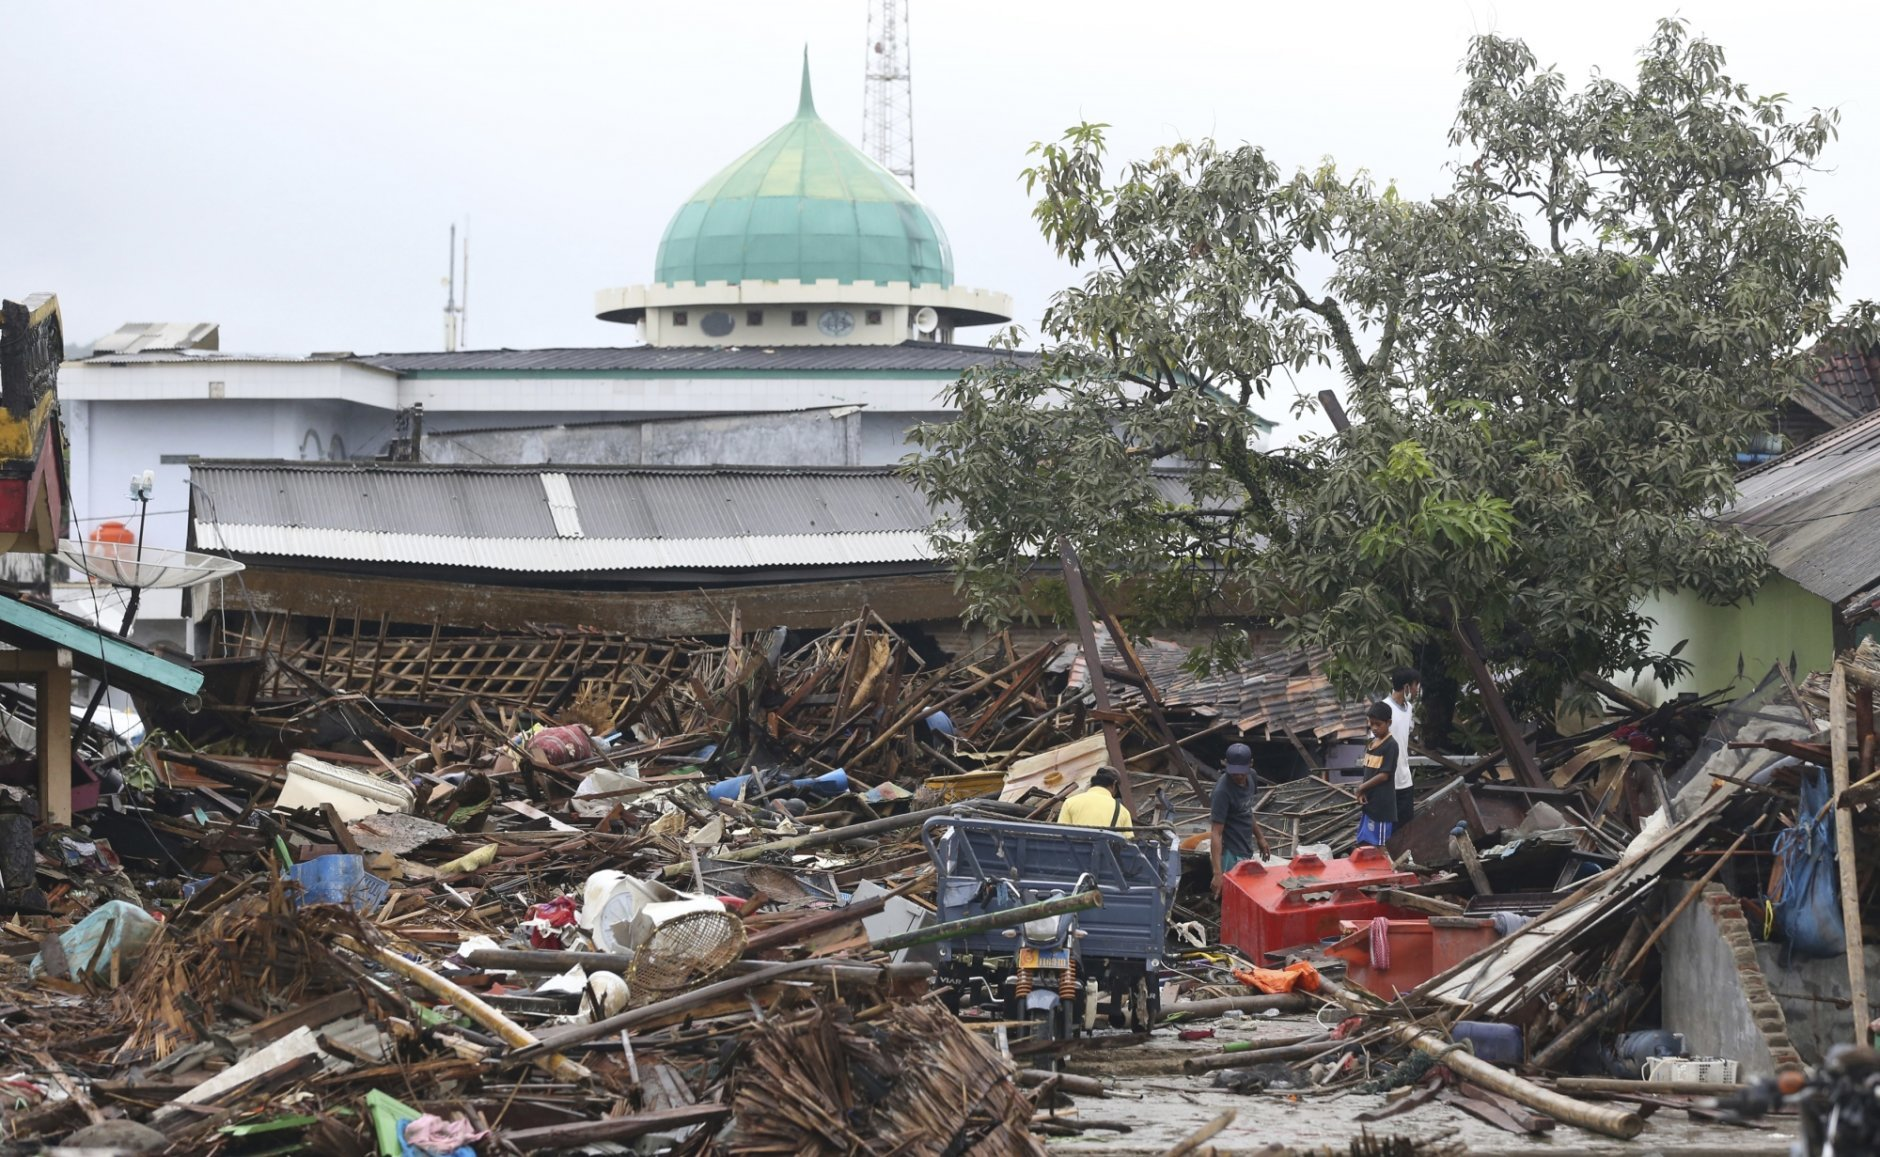 People inspect the damage at a tsunami-ravaged village in Sumur, Indonesia, Tuesday, Dec. 25, 2018. The Christmas holiday was somber with prayers for tsunami victims in the Indonesian region hit by waves that struck without warning Saturday night. (AP Photo/Achmad Ibrahim)